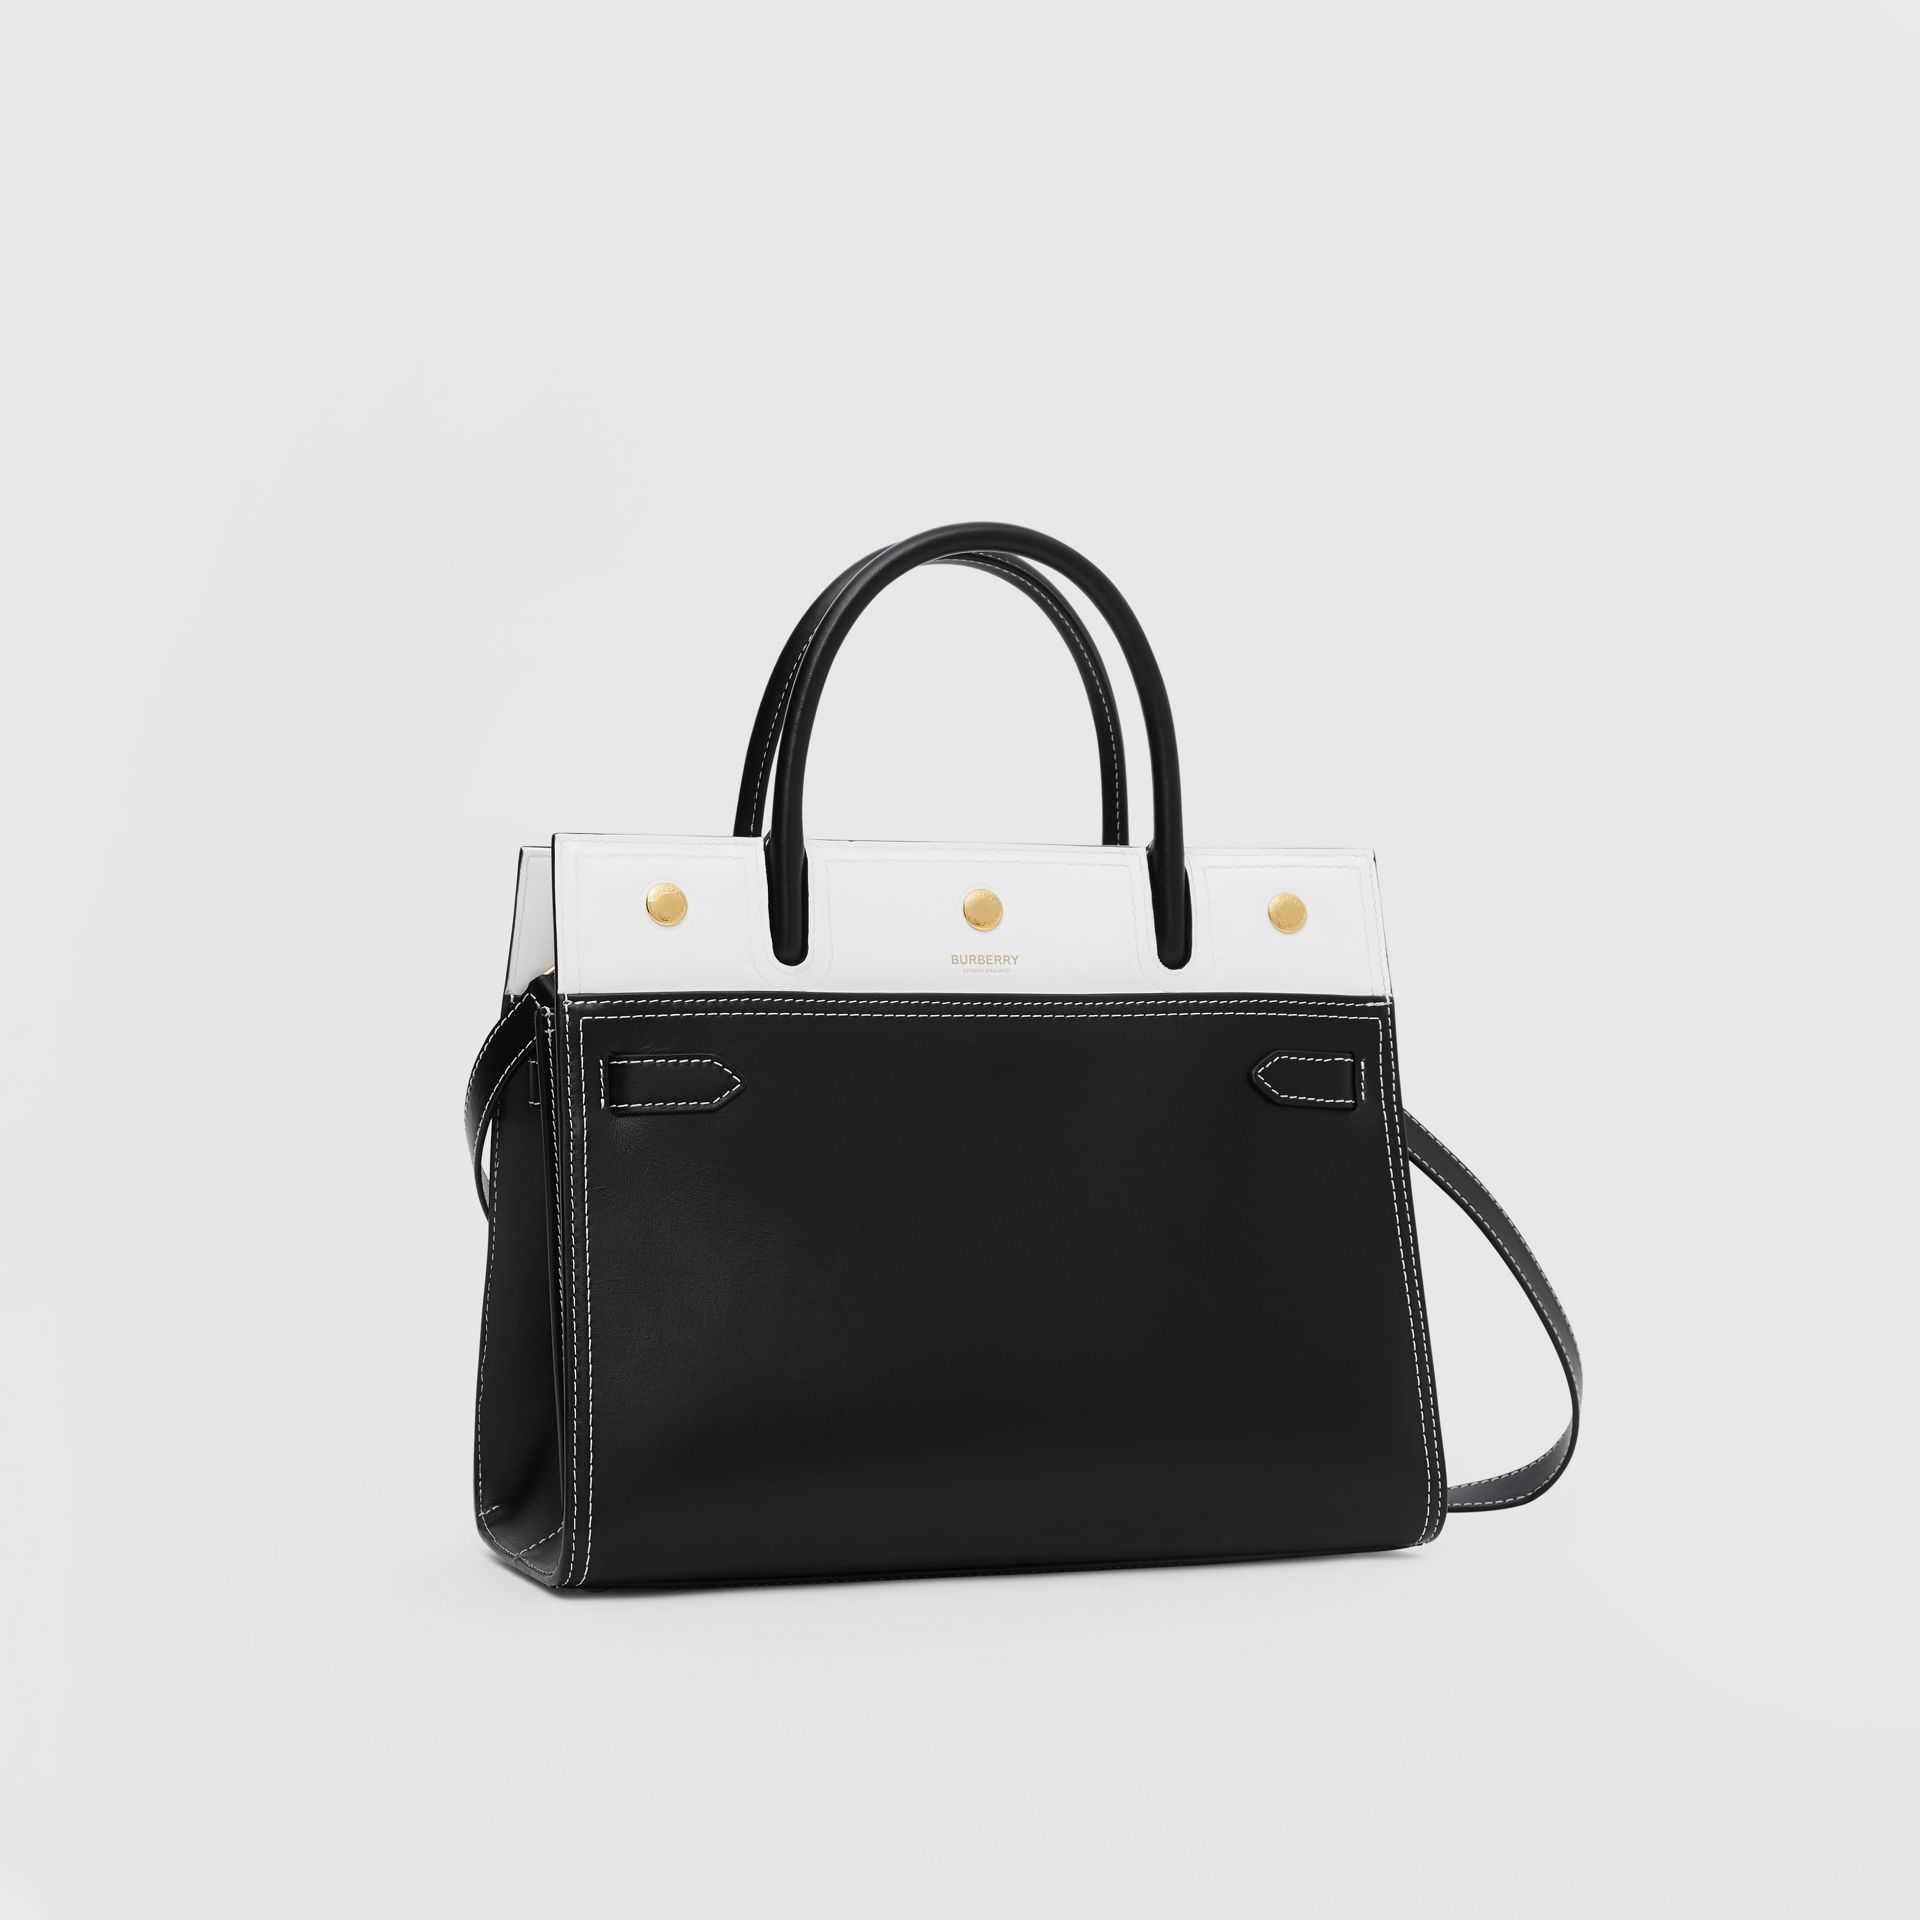 Small Leather Two-handle Title Bag in Black/white - Women | Burberry - gallery image 6